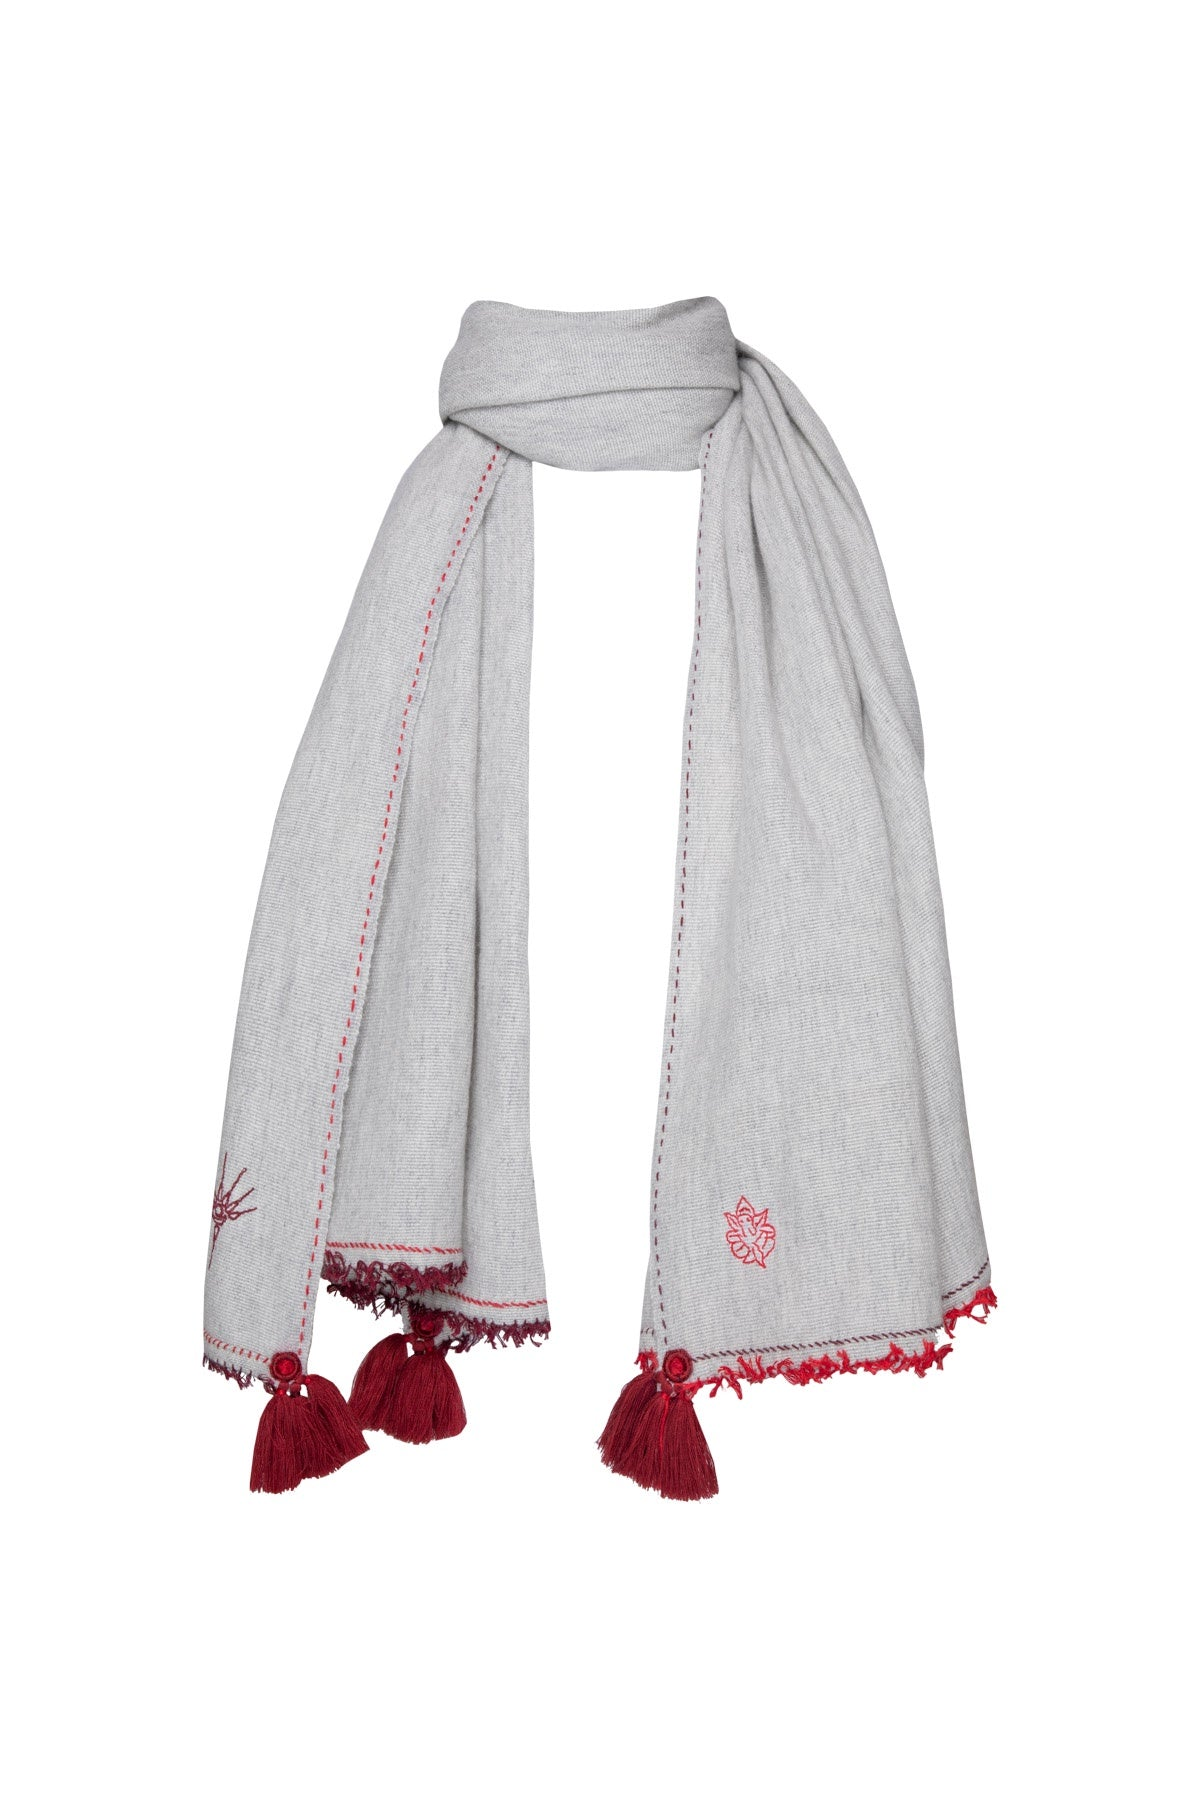 Meditation Shawl - Light Grey with Dark Red Tassels